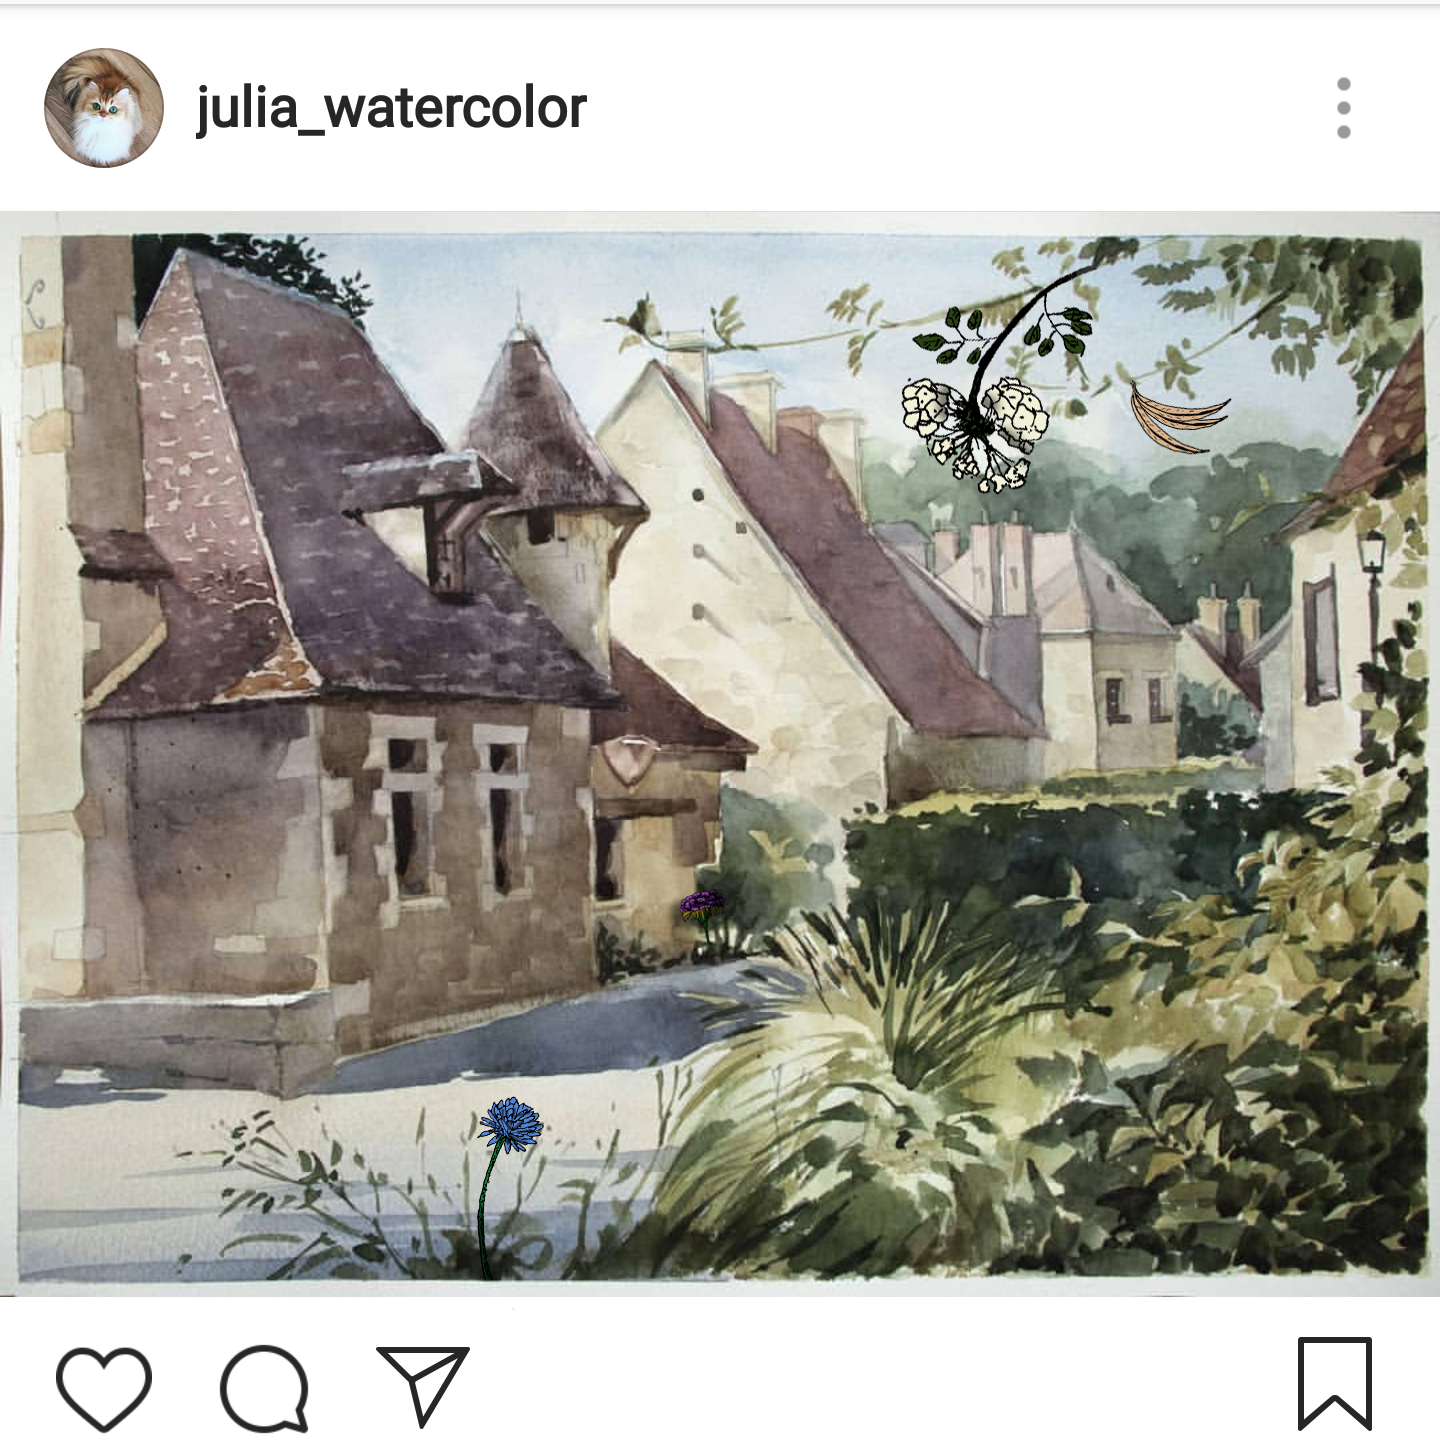 juliawatercolor